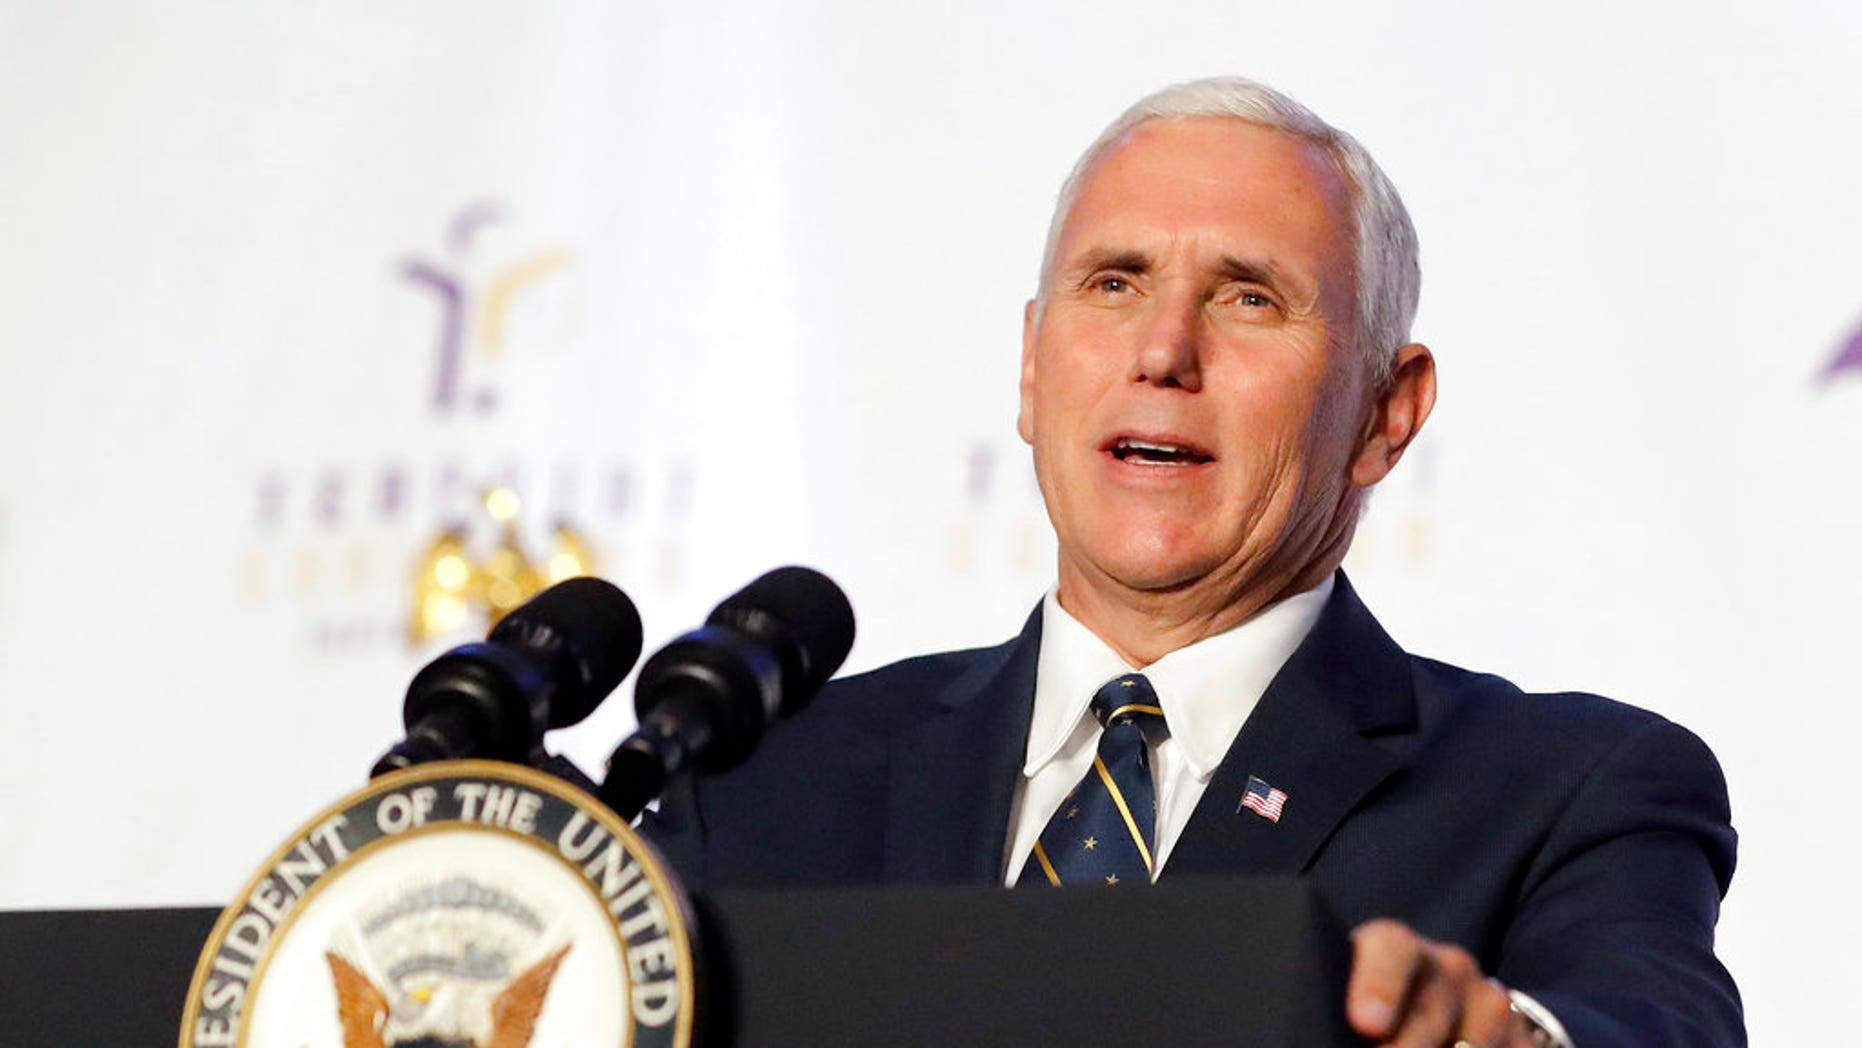 Vice President Mike Pence condemned the Charlottesville rallies, stating the U.S. has no tolerance for hate and violence from white supremacists.